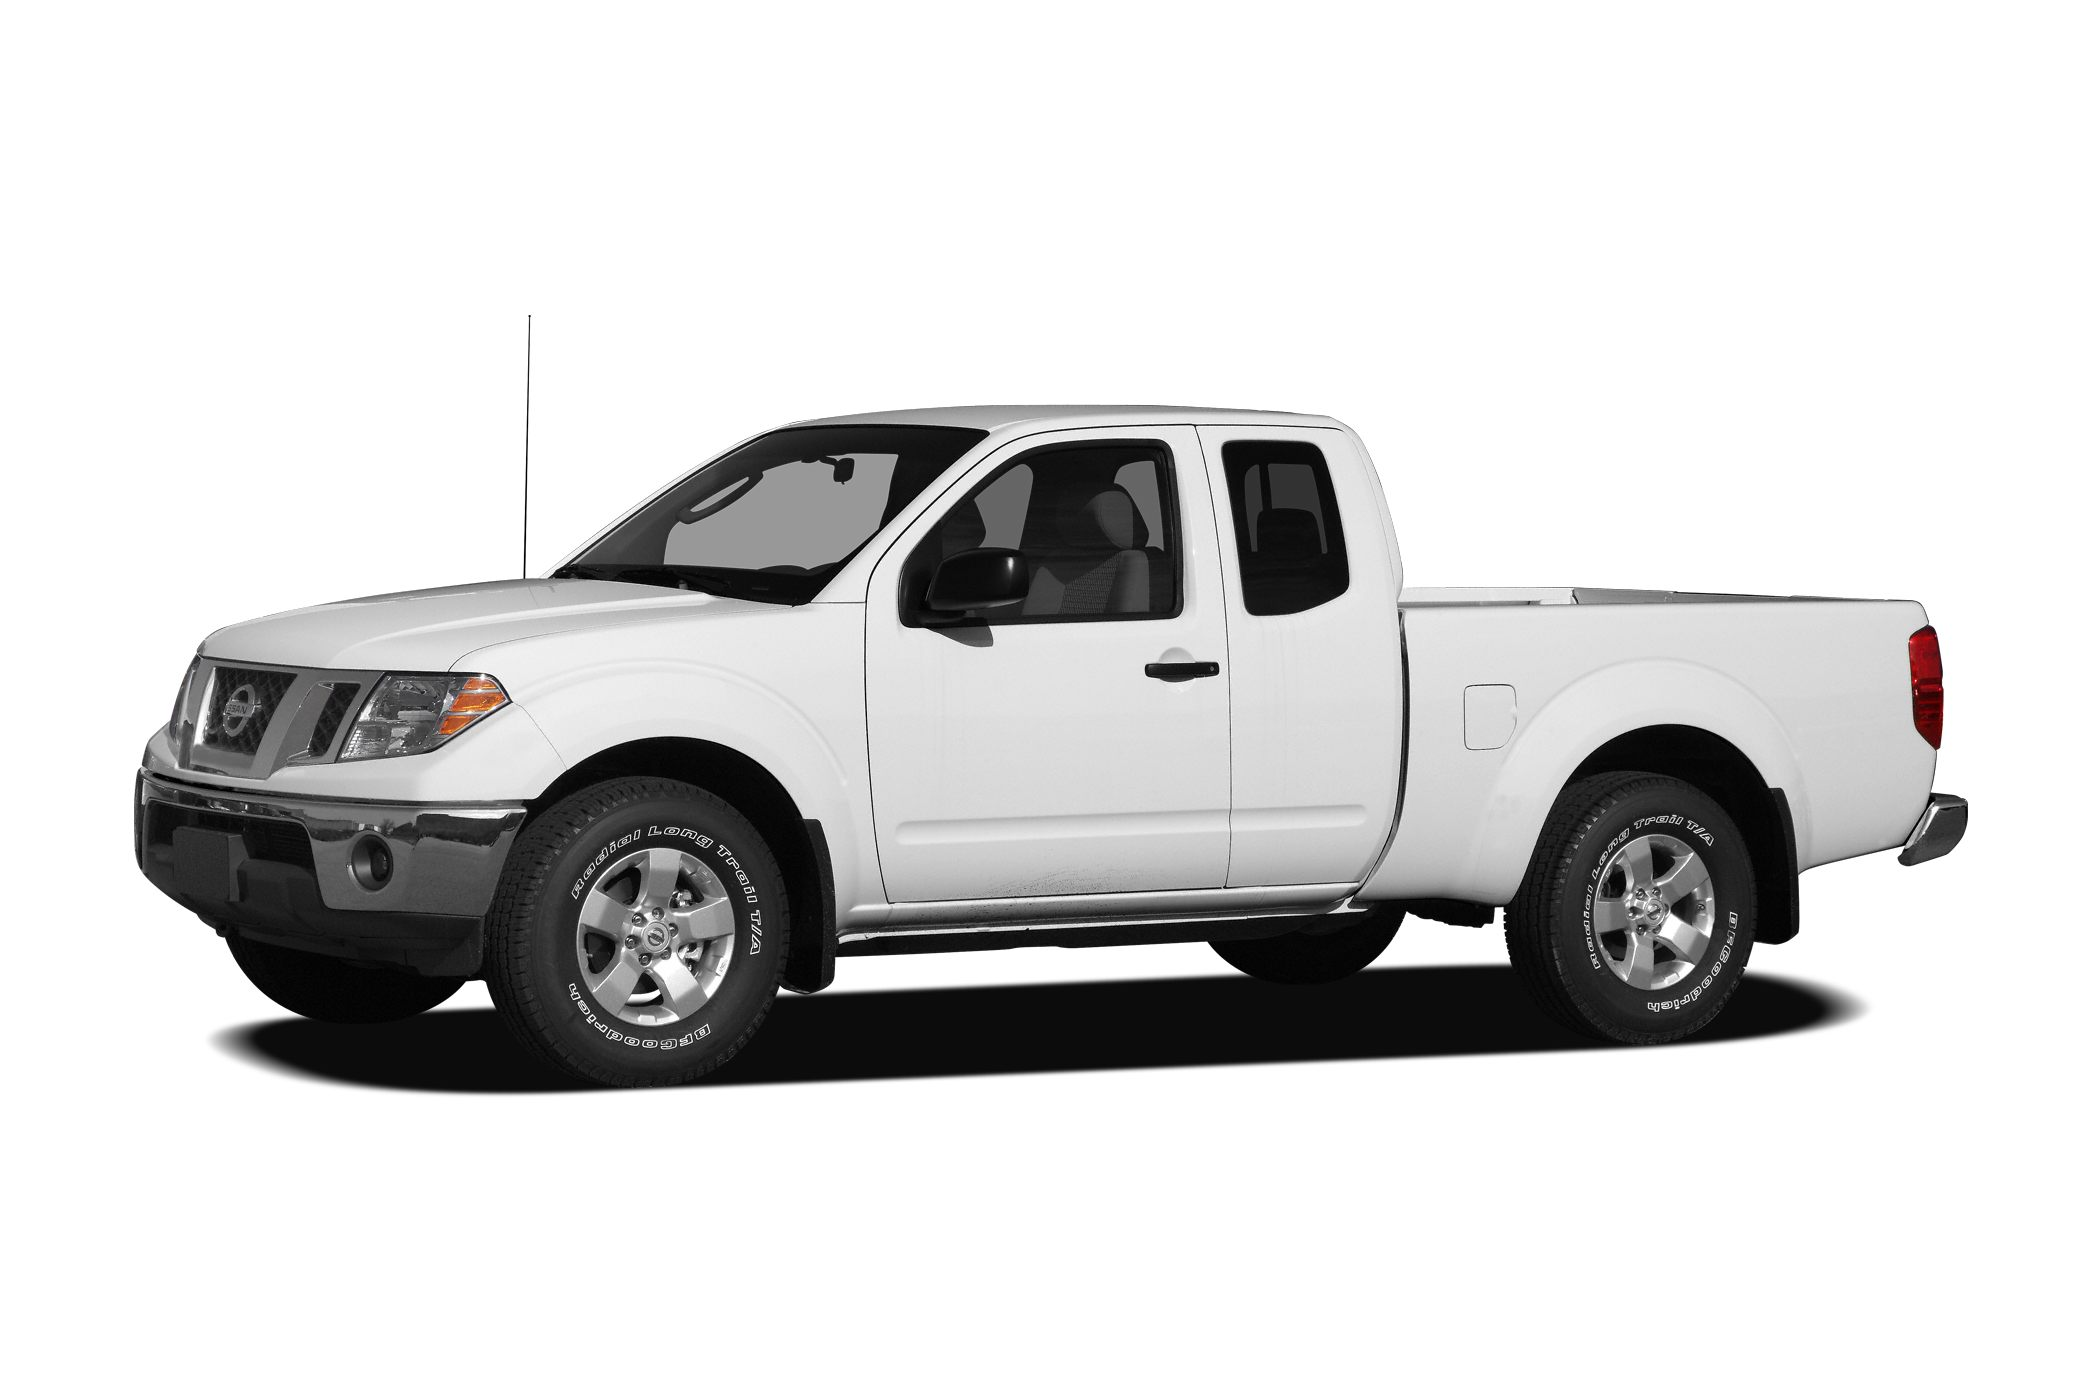 USC00NIT121B0101 - 2010 Nissan Frontier King Cab Se At